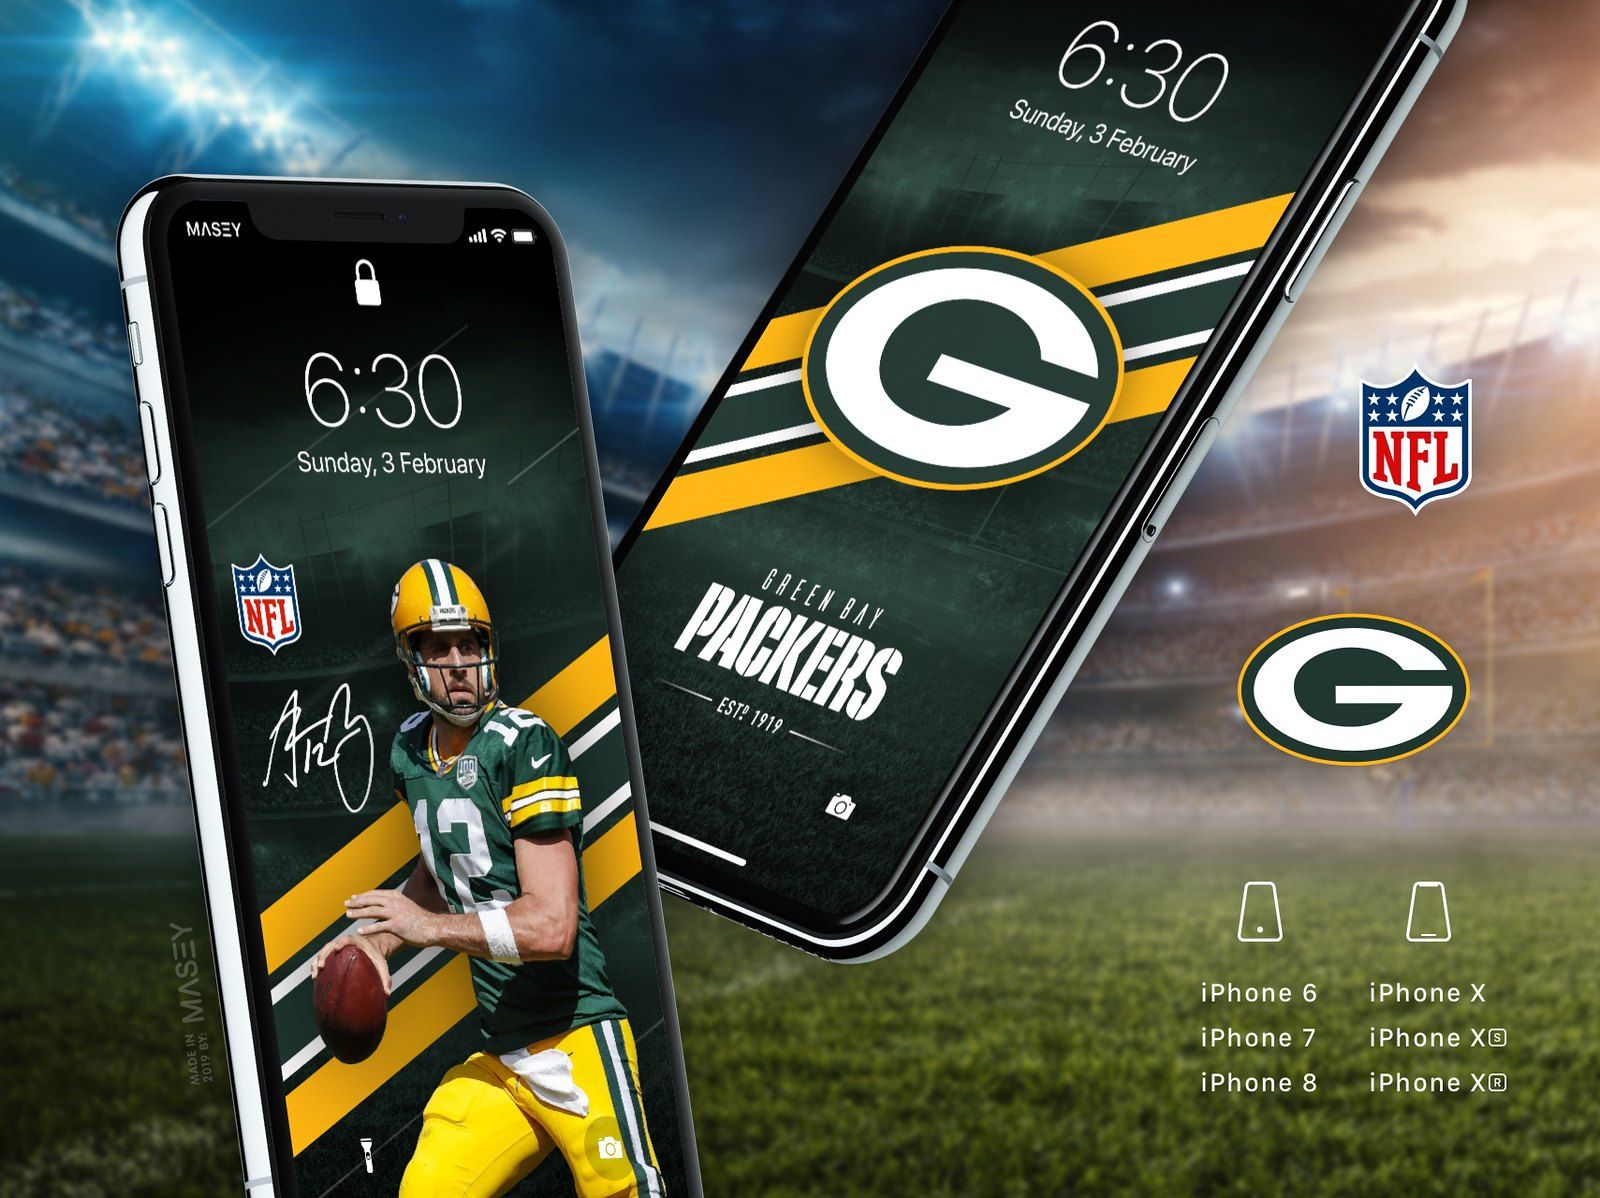 Green Bay Packers iPhone Wallpapers (With images) Iphone